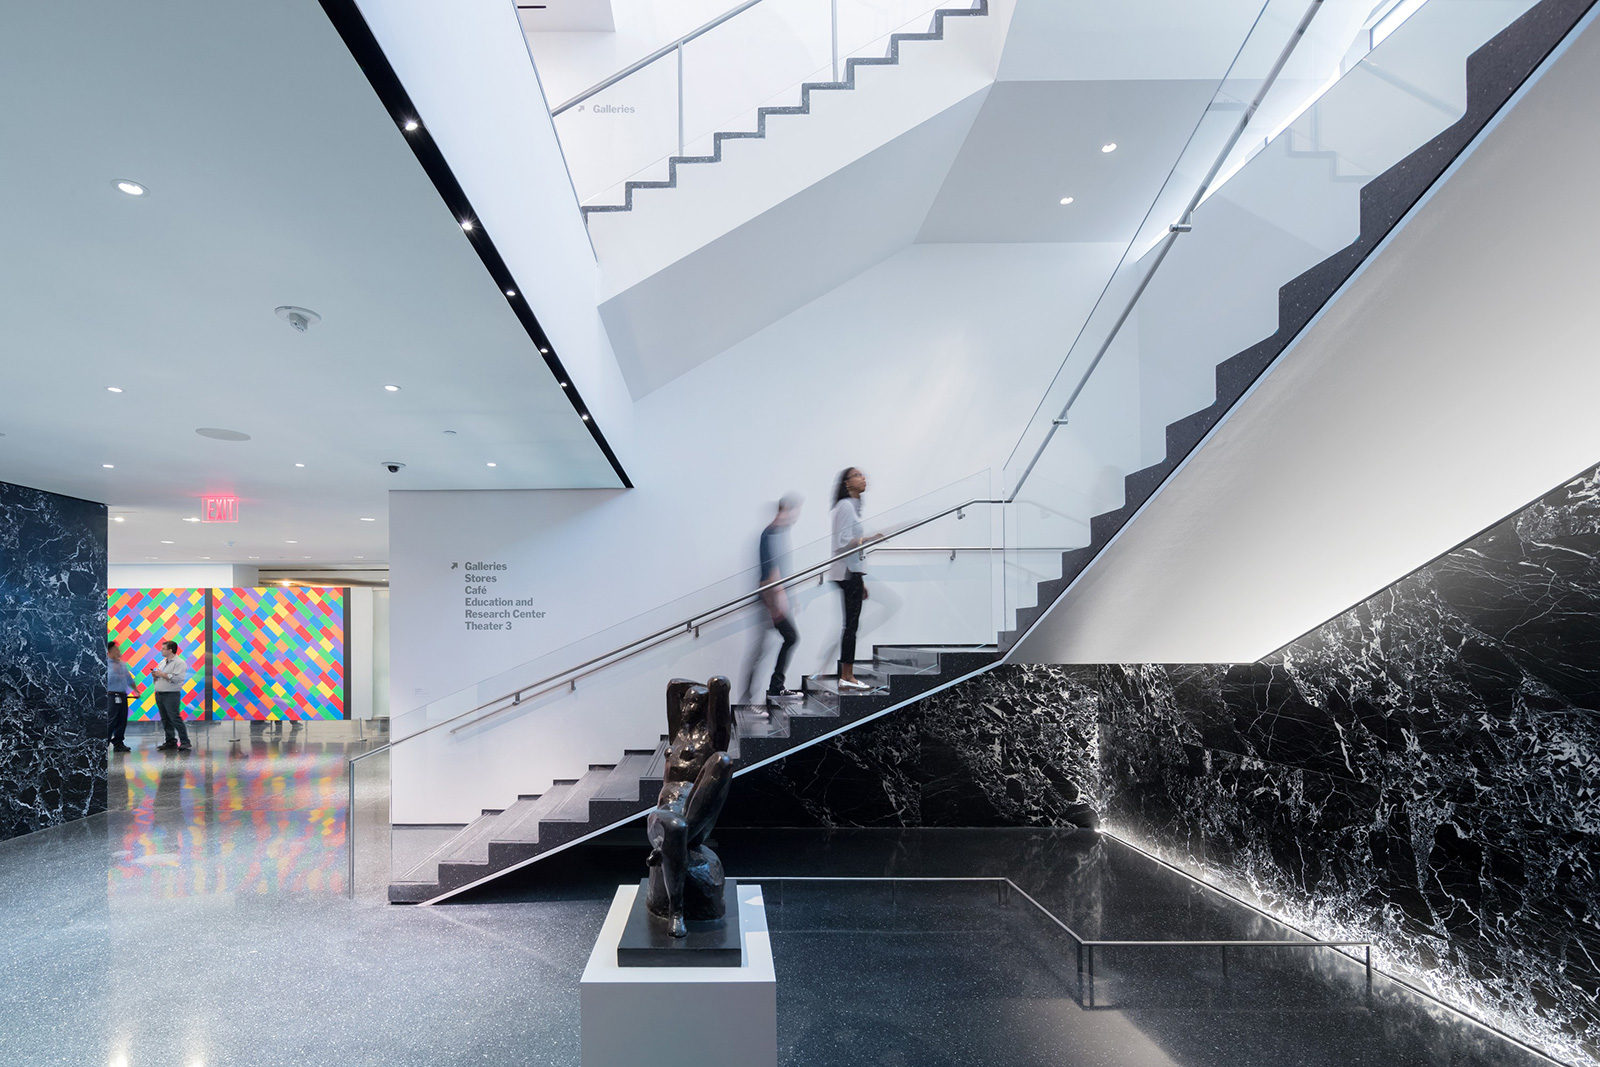 11 new museums opening in 2019: MOMA extension phase II due for completion 2019